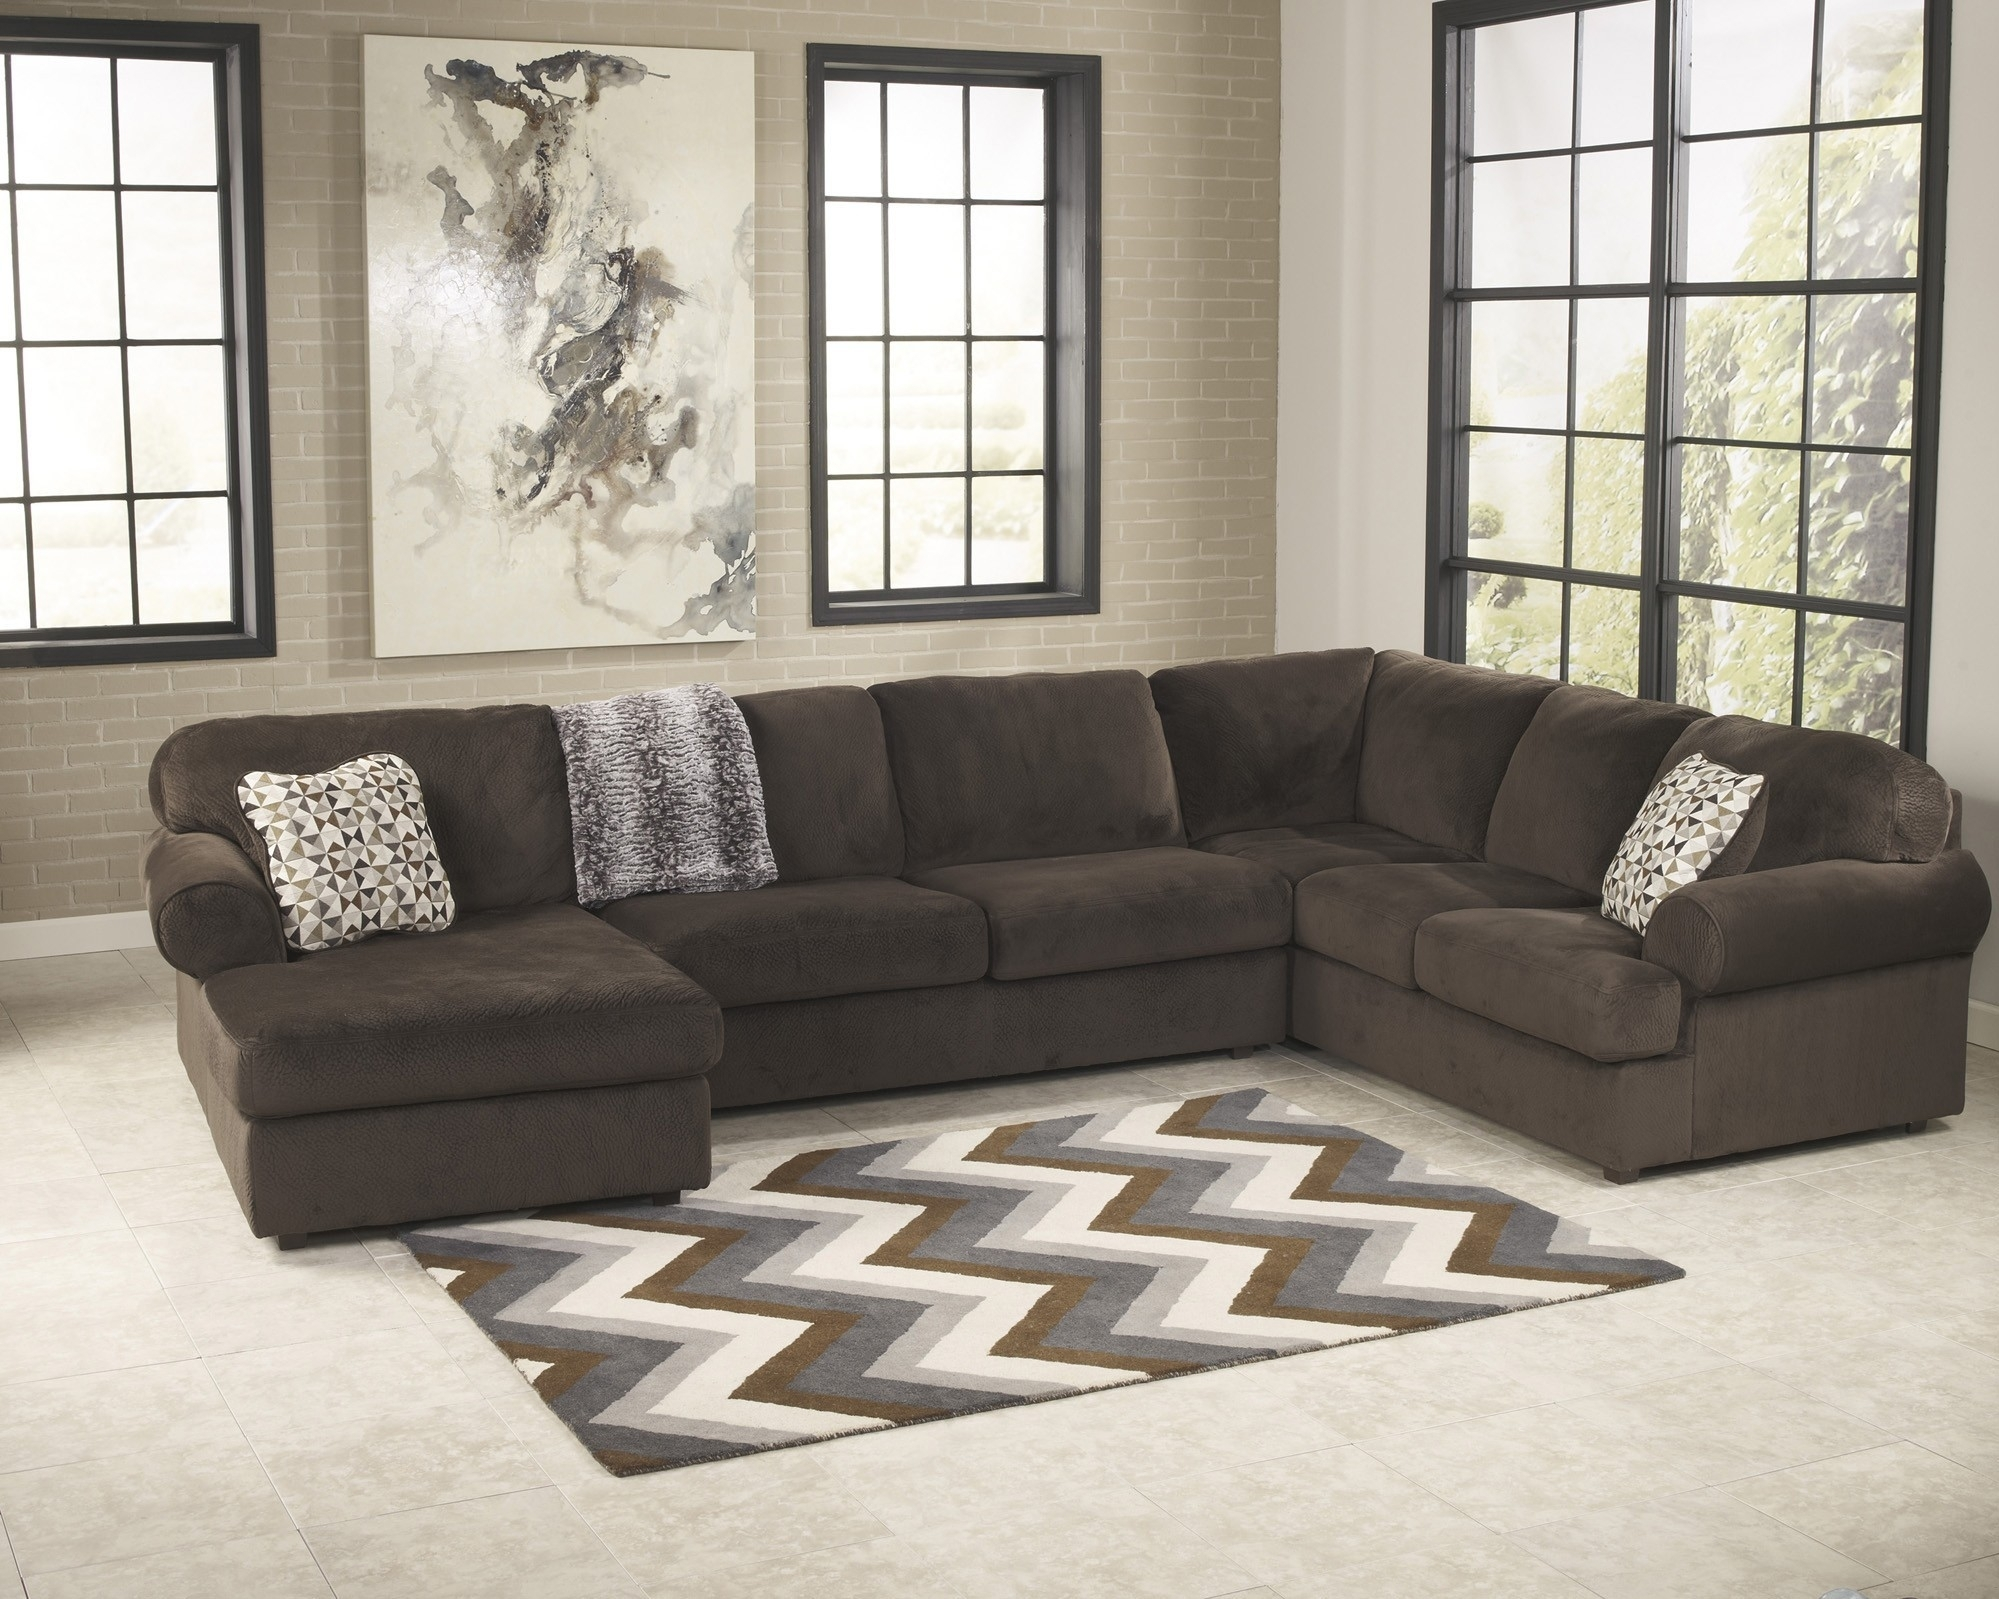 3 Piece Sectional Malbry Point W Laf Chaise Living Spaces 223533 0 Throughout Malbry Point 3 Piece Sectionals With Laf Chaise (View 10 of 25)